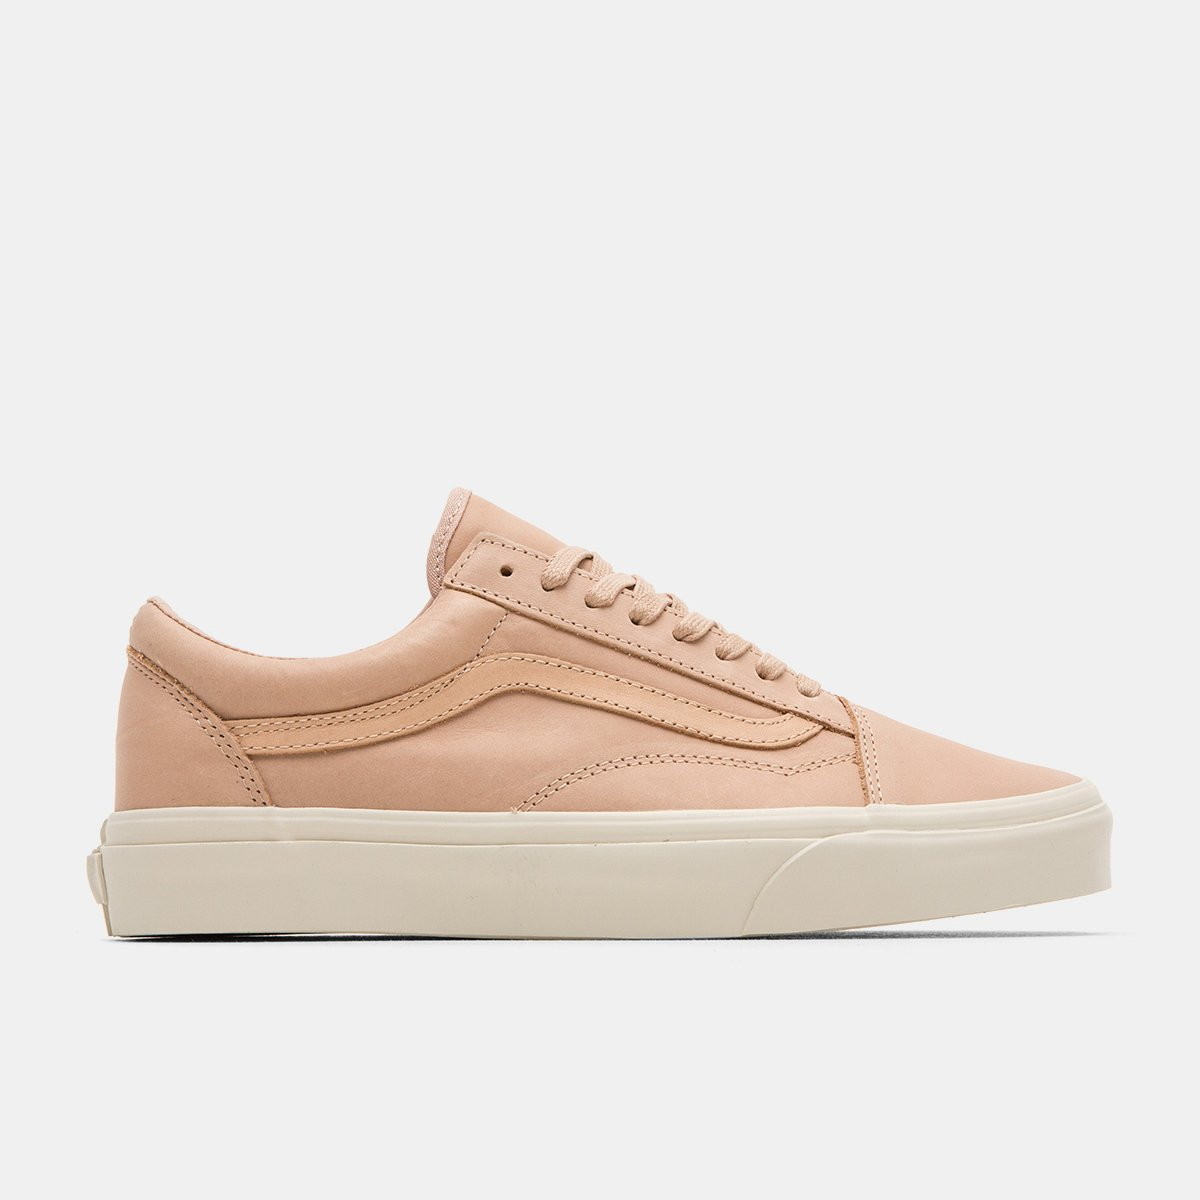 586739a2aa ... Vans Vault Veggie Tan Leather Old Skool DX Available In-Store   Online  Now  http   www.ubiqlife.com veggie-tan-leather-old-skool-dx-vn-0a32gjlui.html  … ...